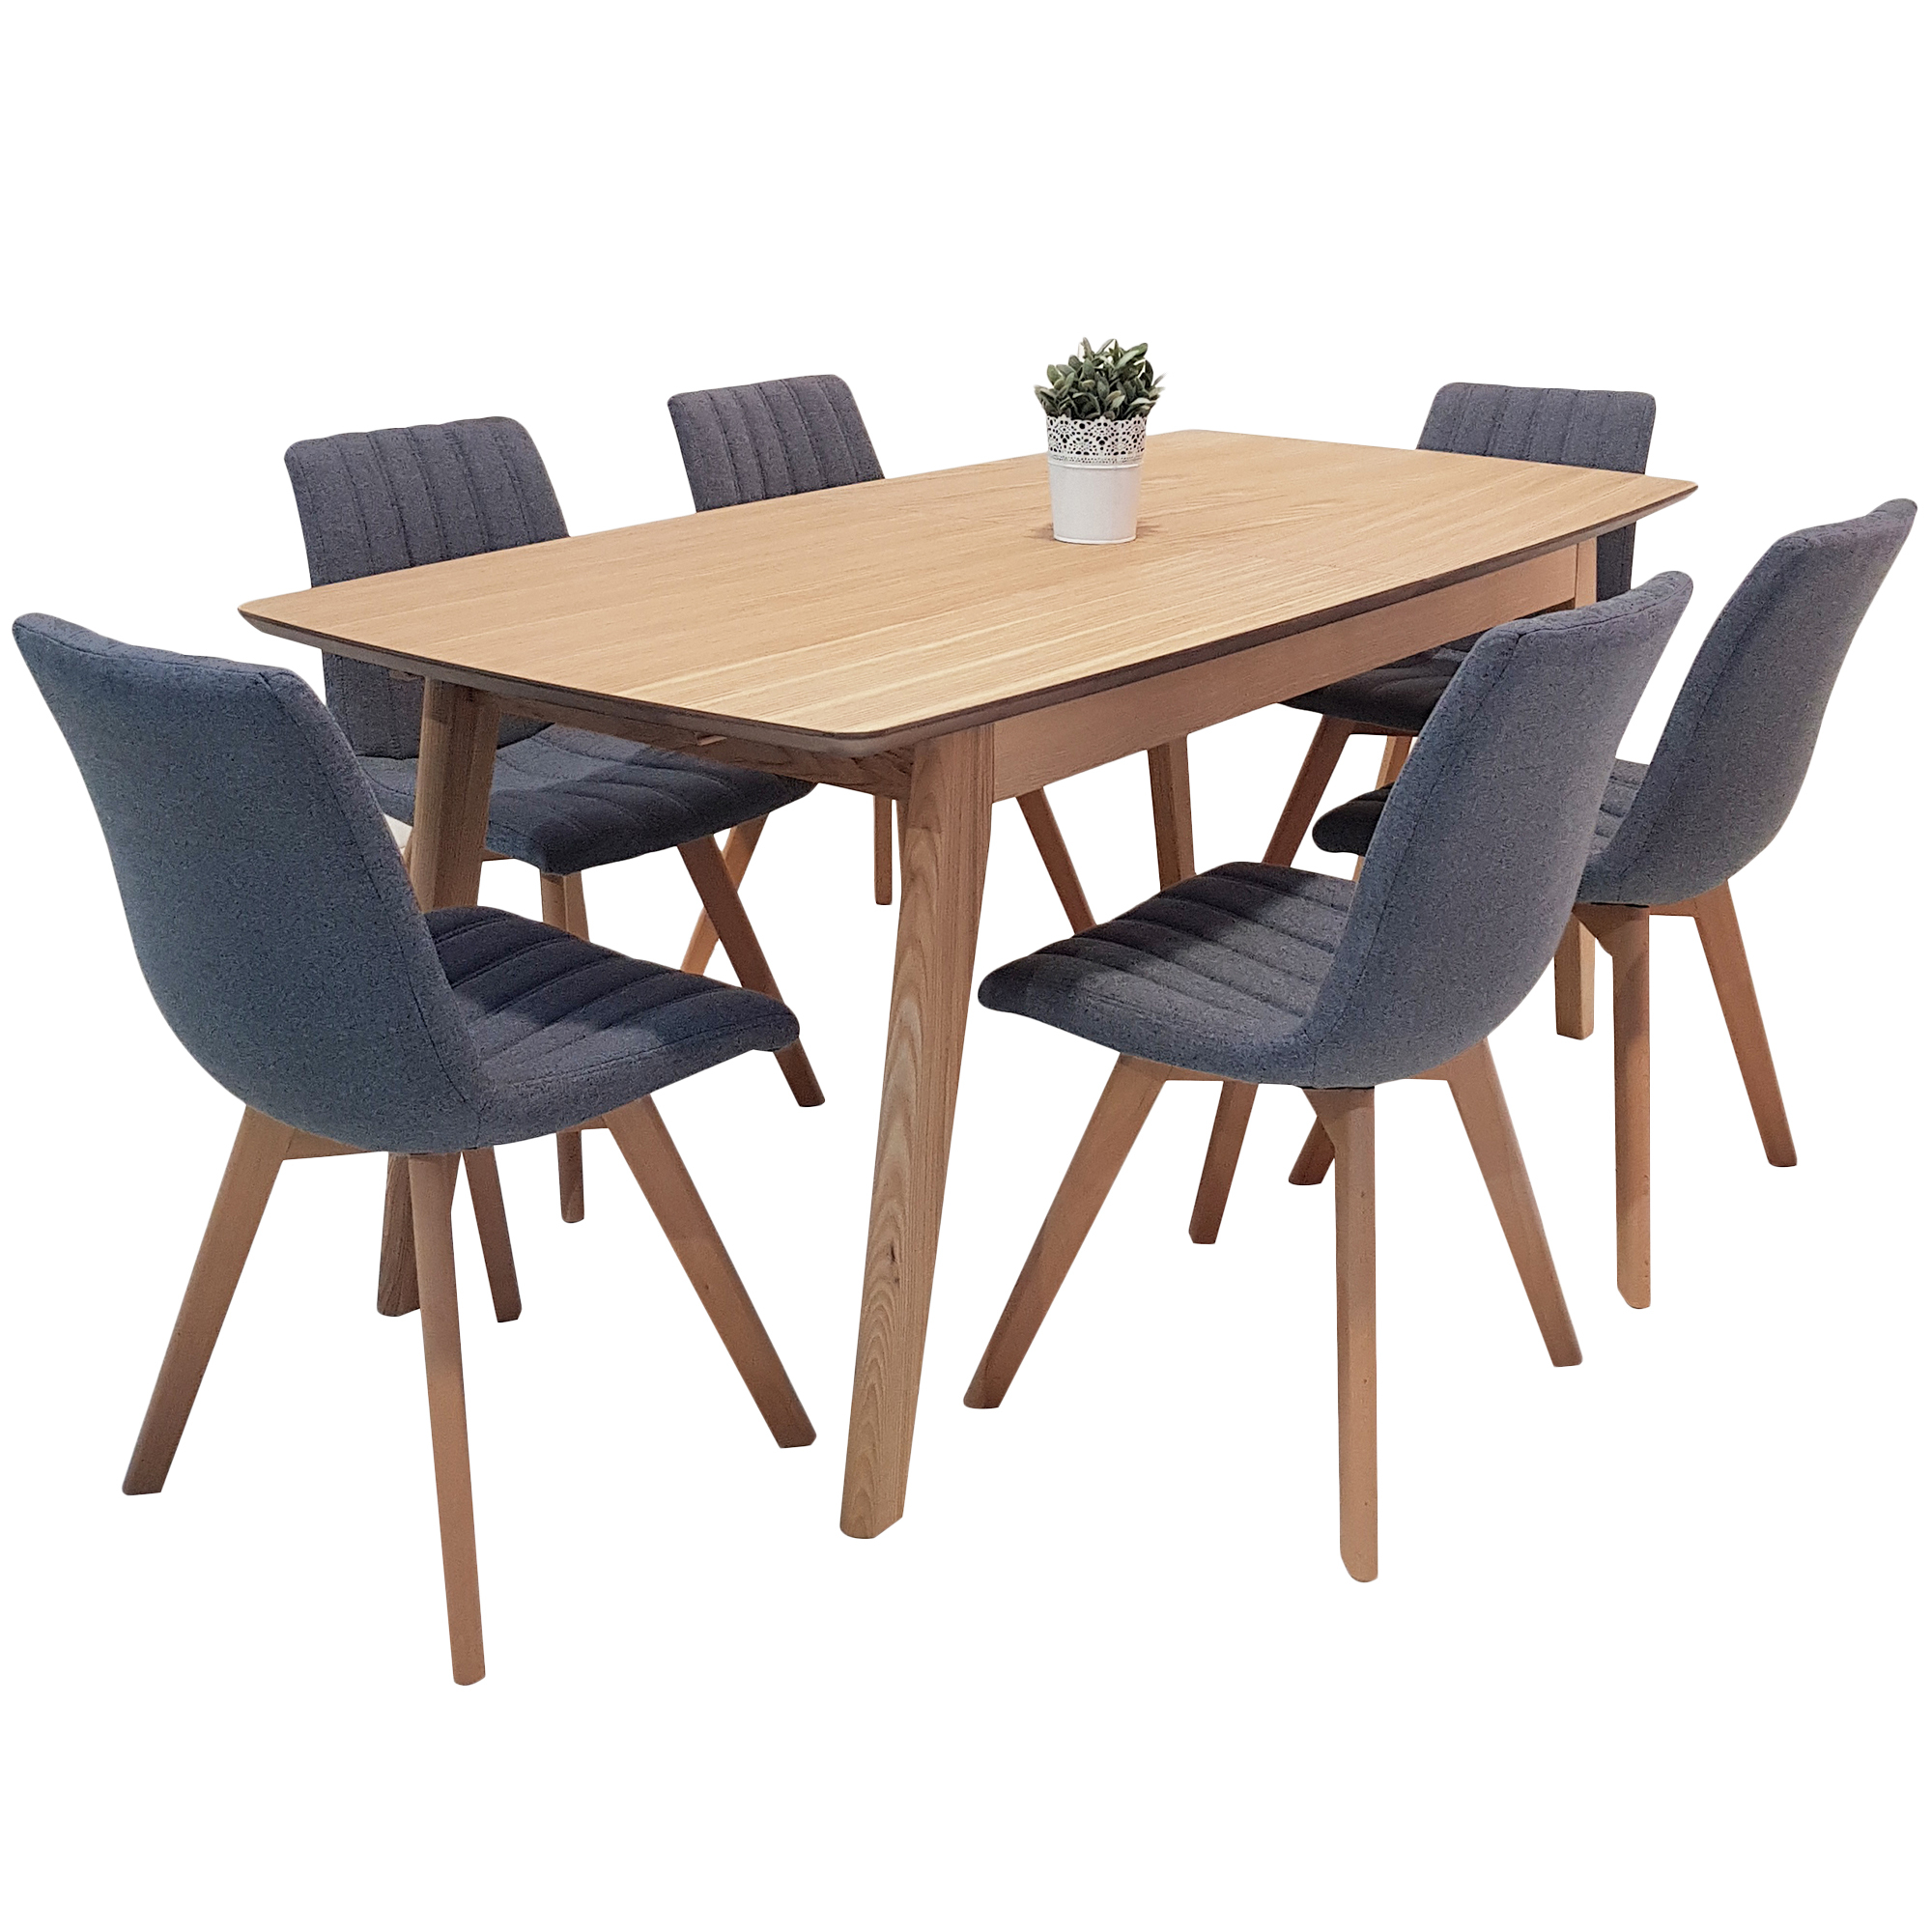 NEW 6 Seater Alexandria Extendable Dining Table & Chairs ...